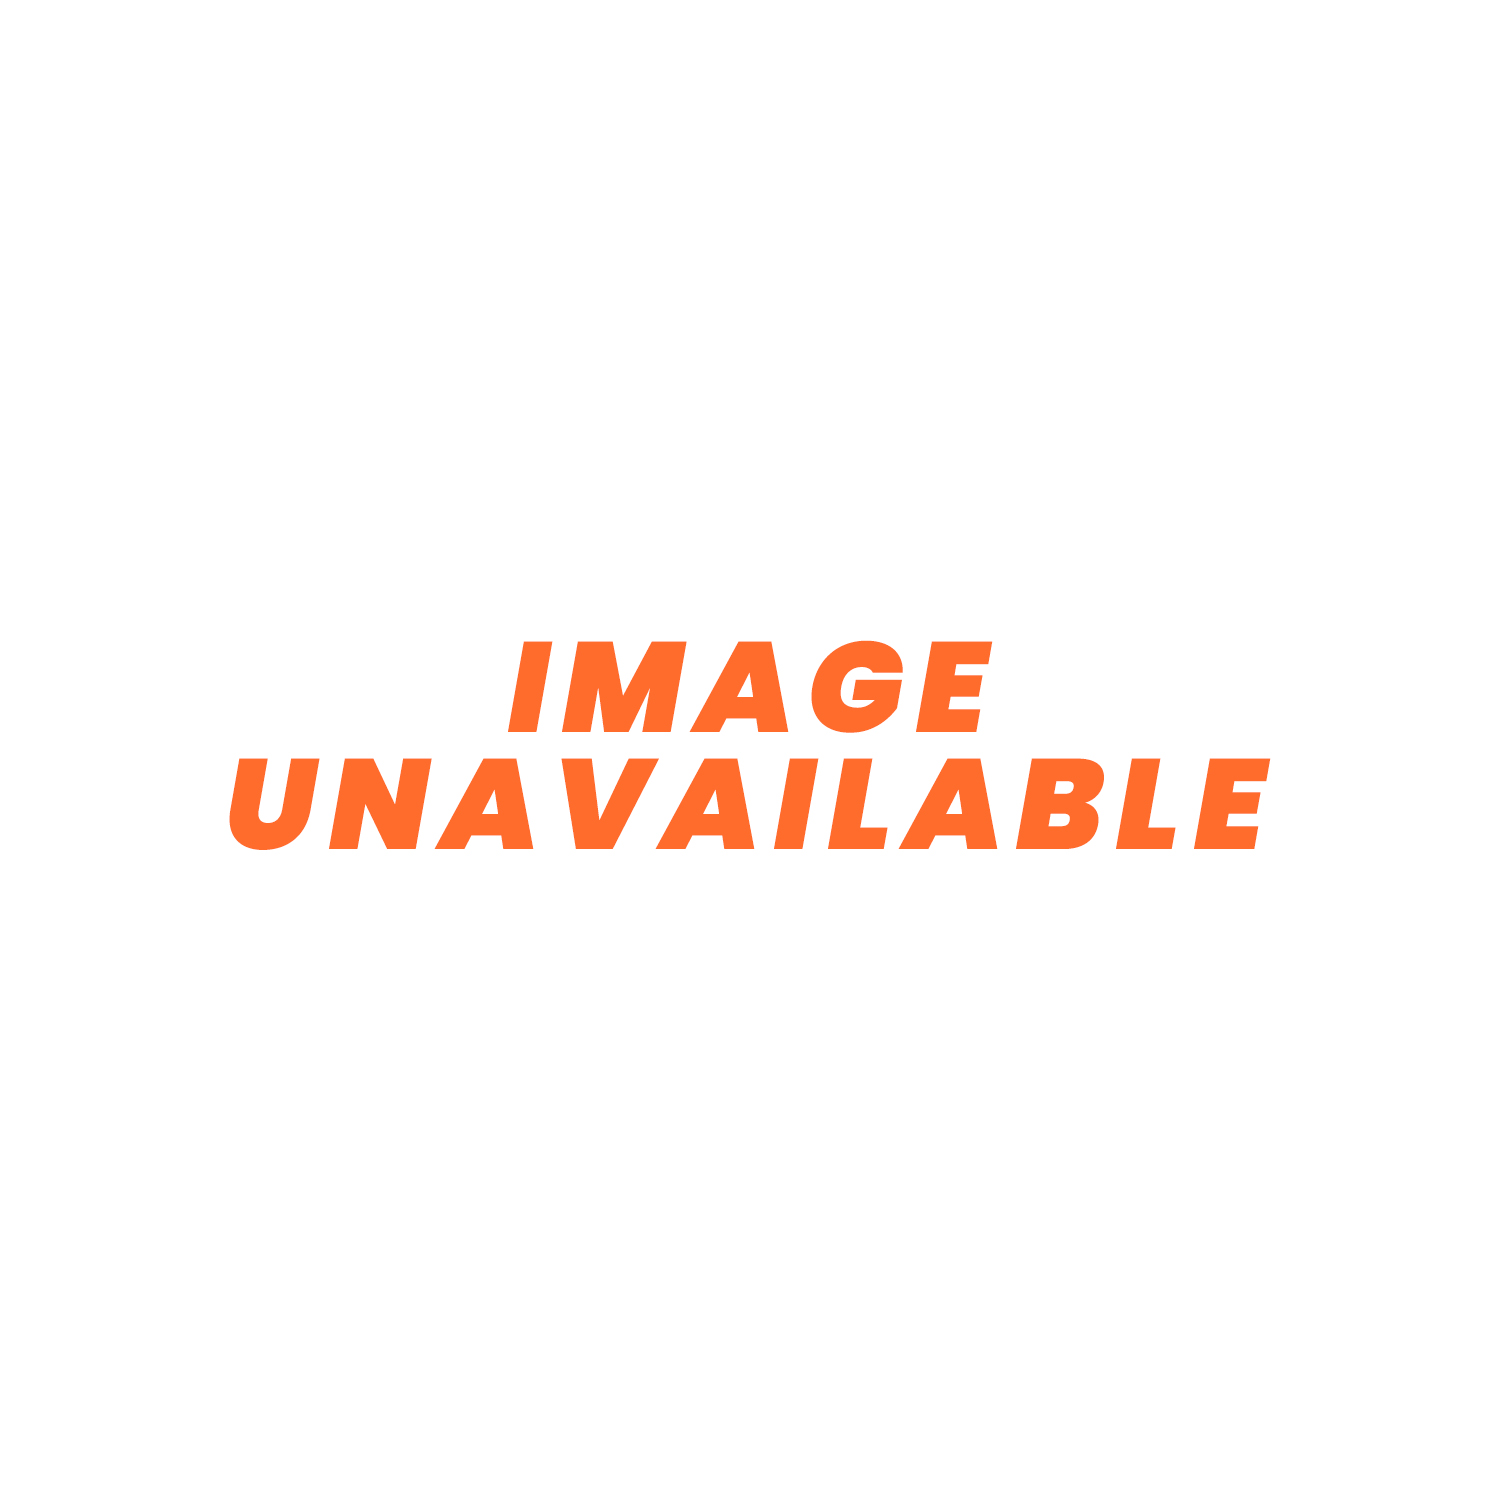 Fuse And Relay Box For Automotive : Way standard blade fuse box